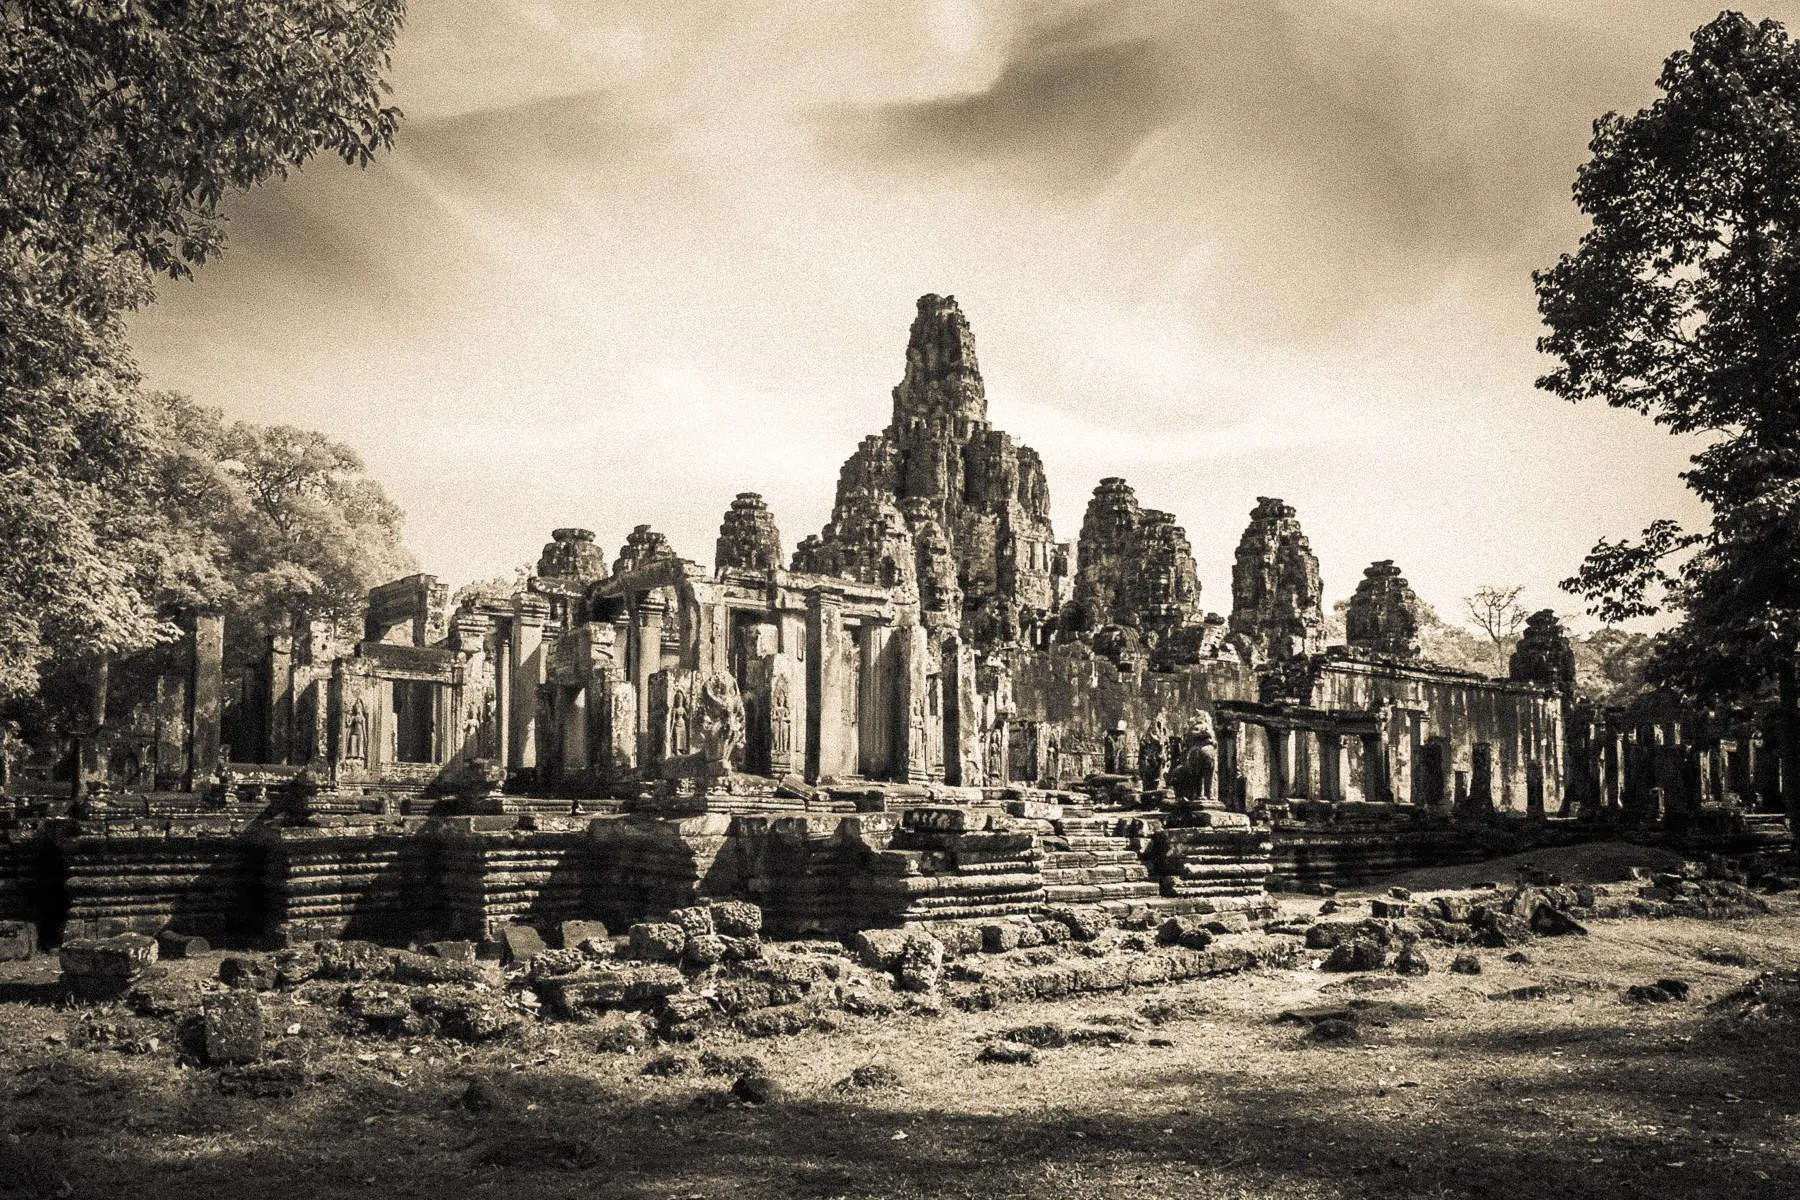 The wonder of Angkor Wat